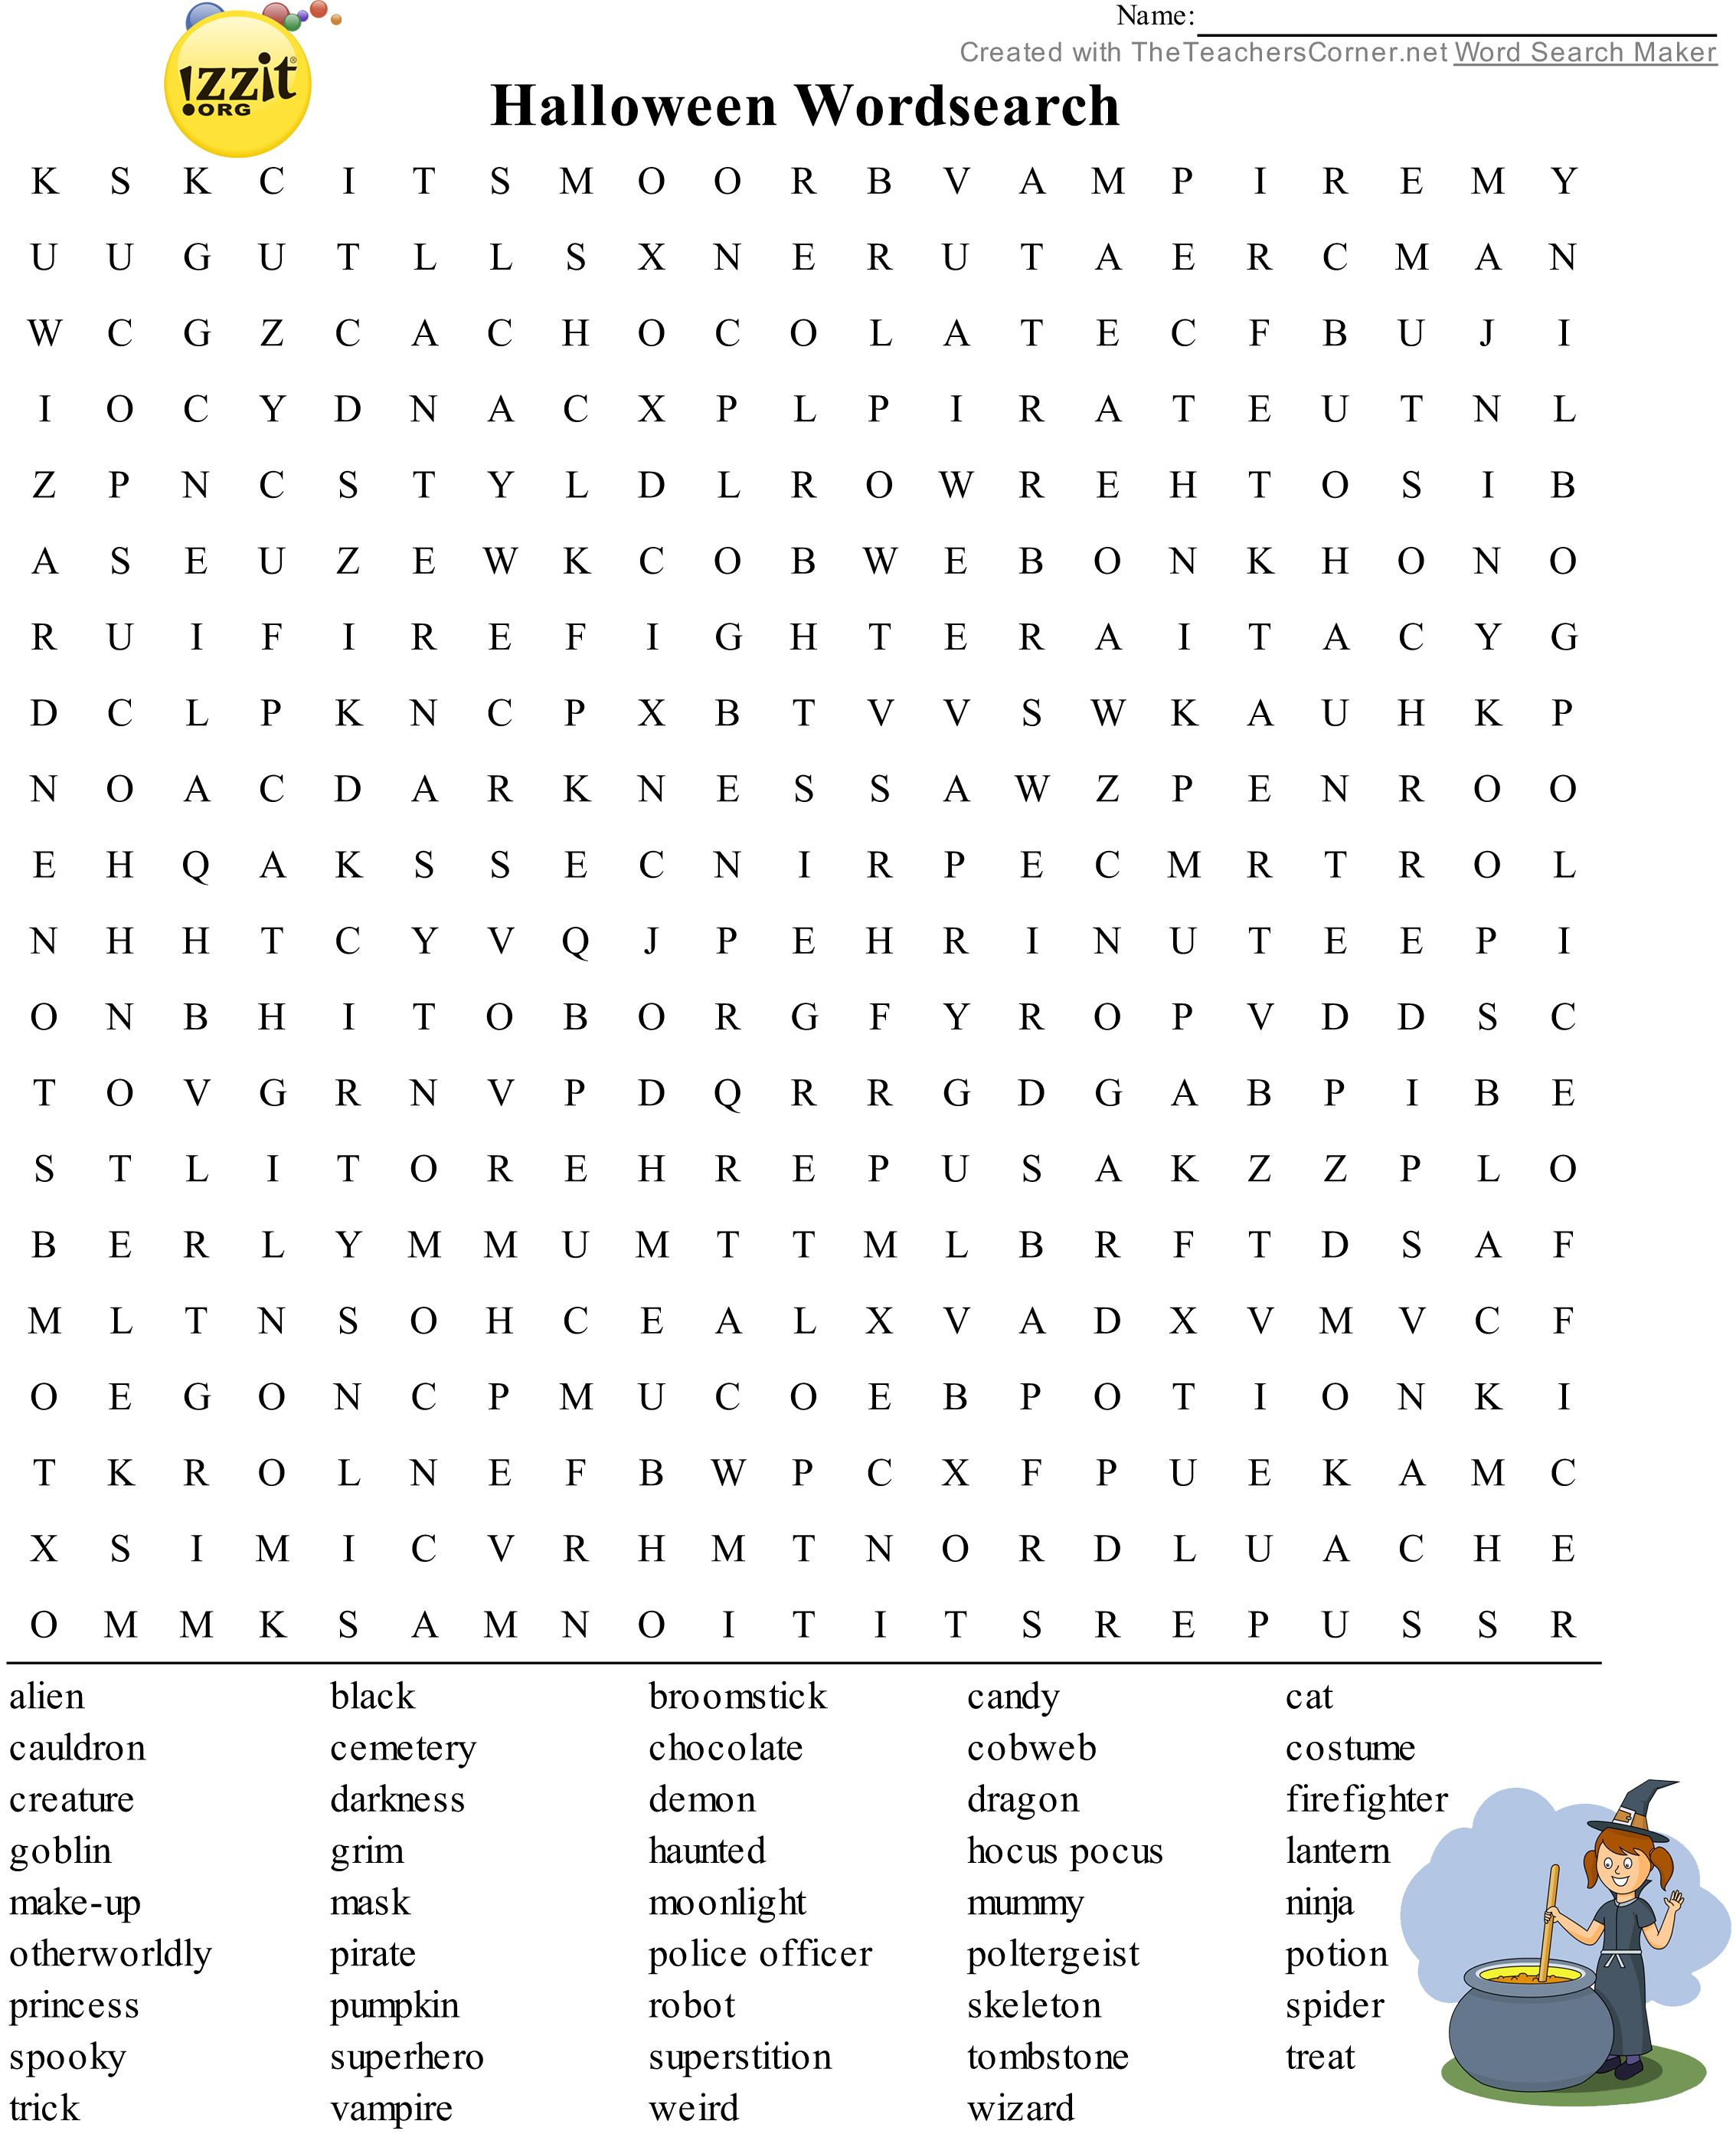 Halloween Word Search - Hard #happyhalloween 💀👻🎃 | Classroom - Printable Grey's Anatomy Crossword Puzzles